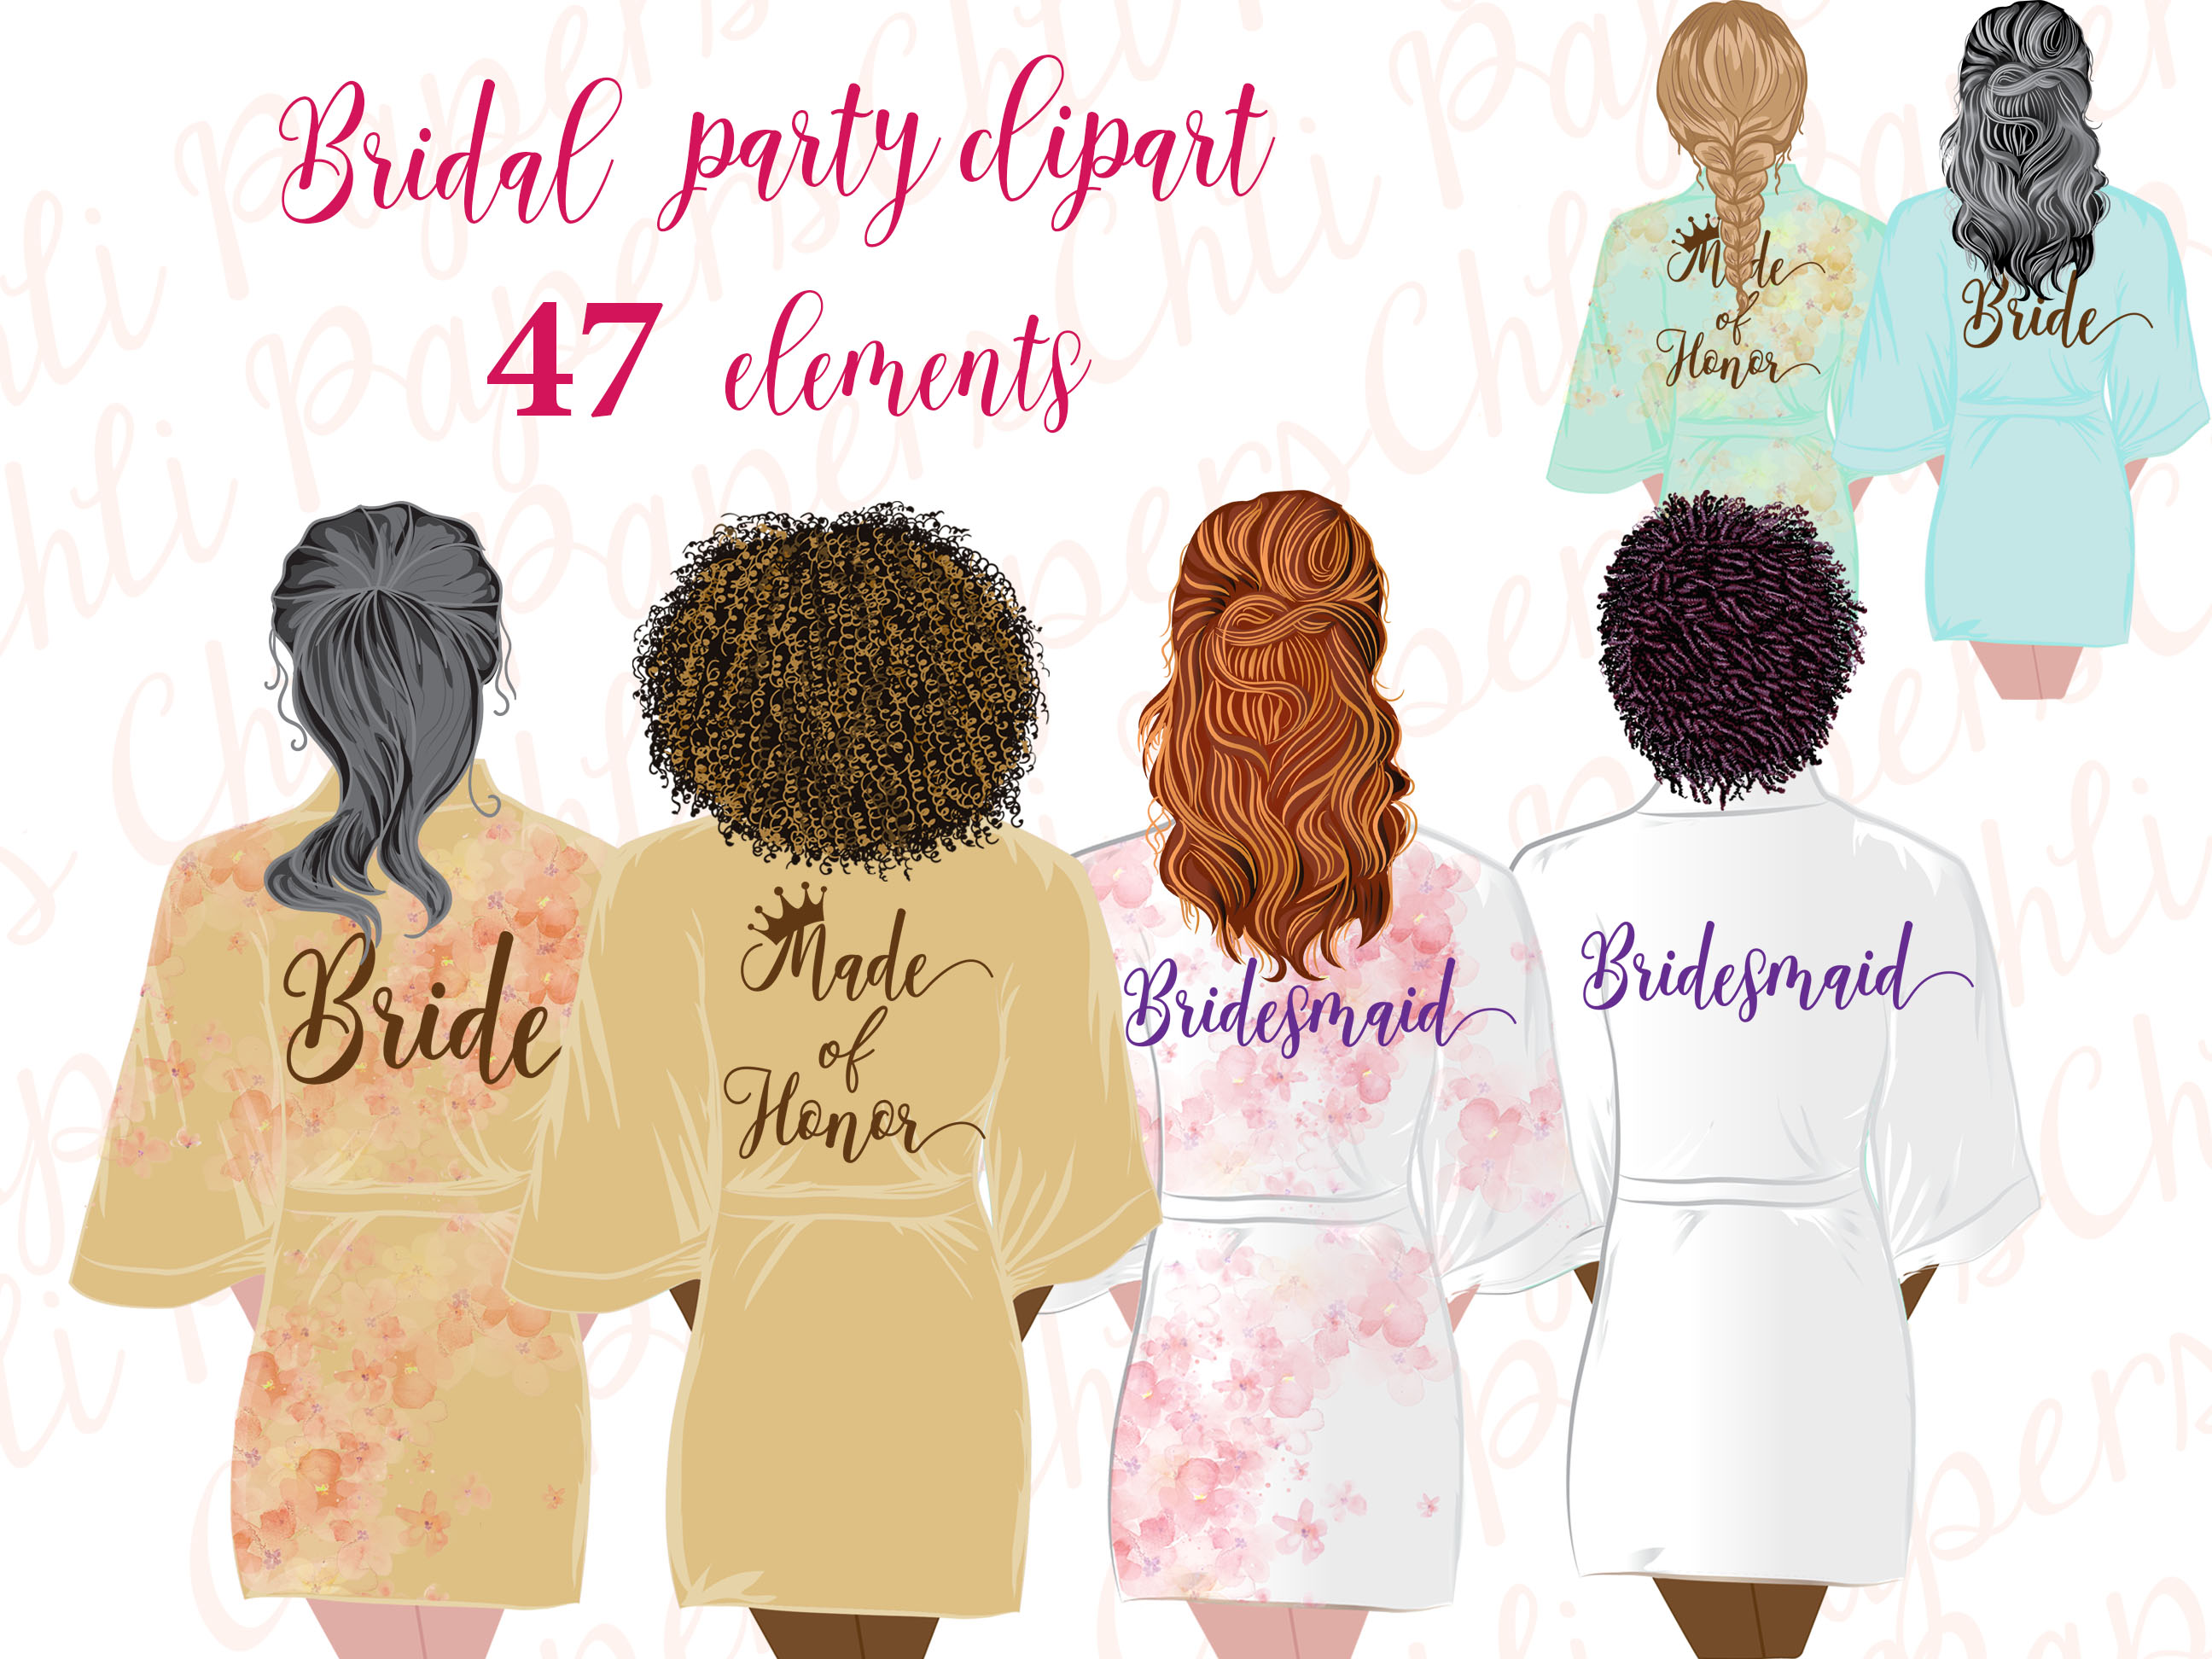 Bridesmaid Robe Clipart,Bride Clipart.